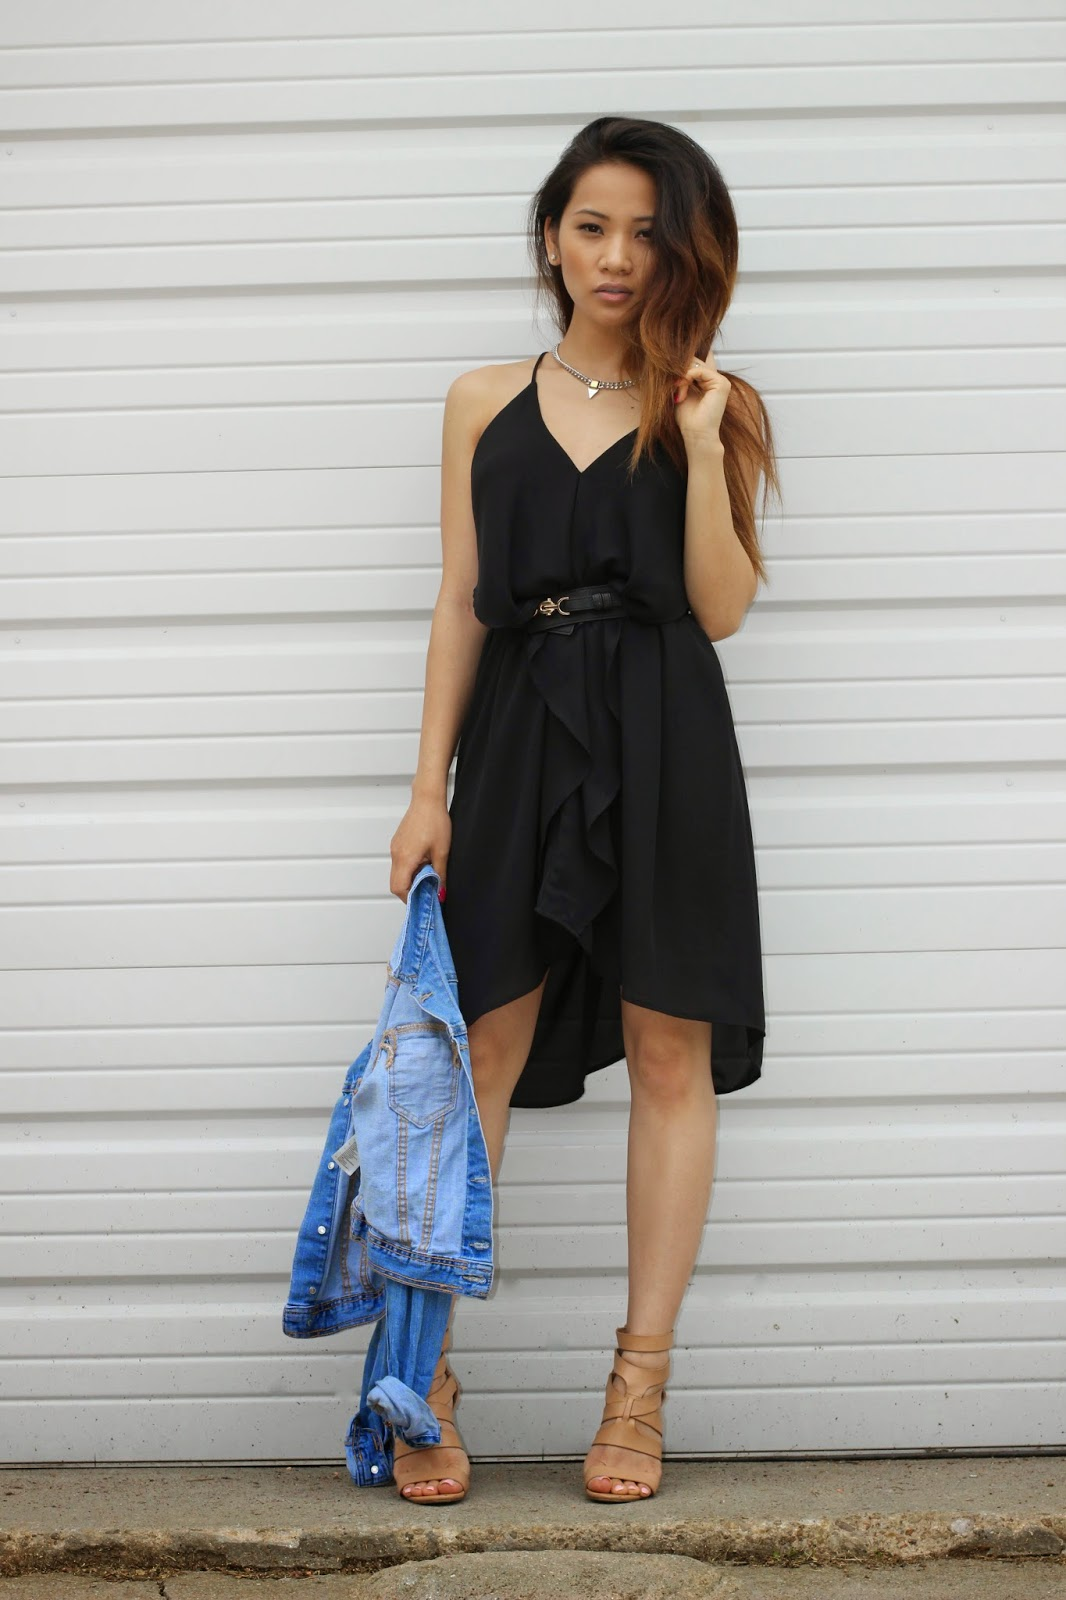 melba nguyen, vant jag, fashion blogger, backless dress, virginia fashion blogger